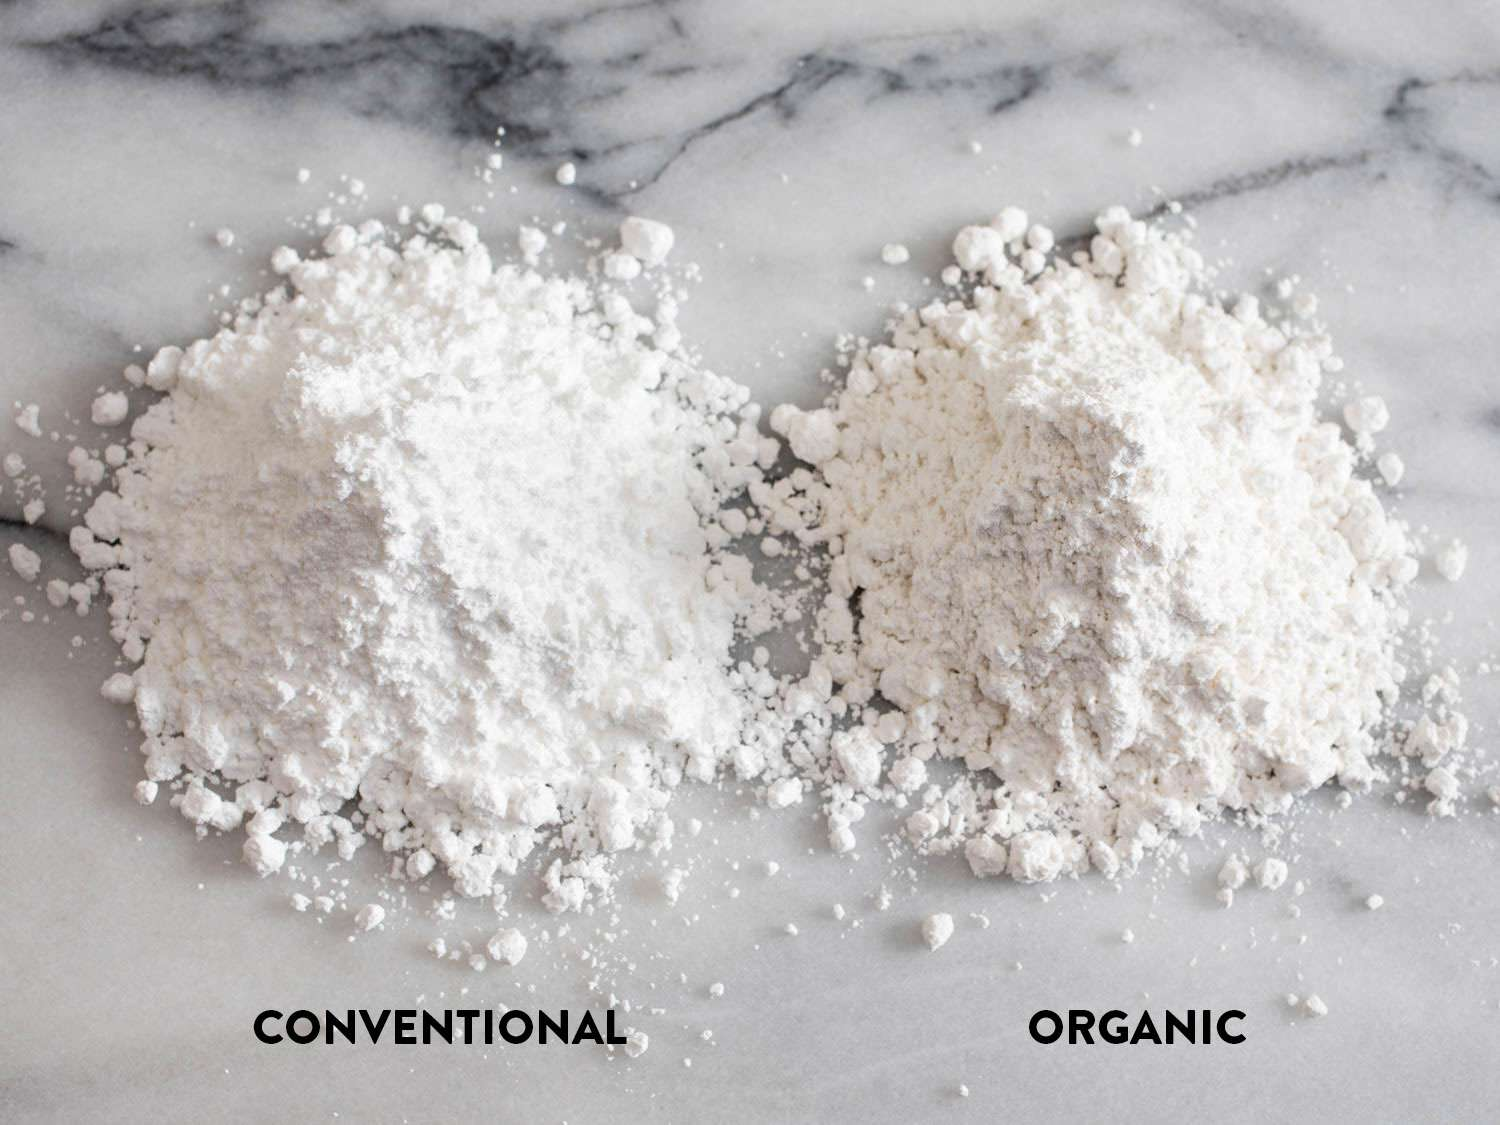 Comparison of conventional and organic powdered sugars, against a marble background